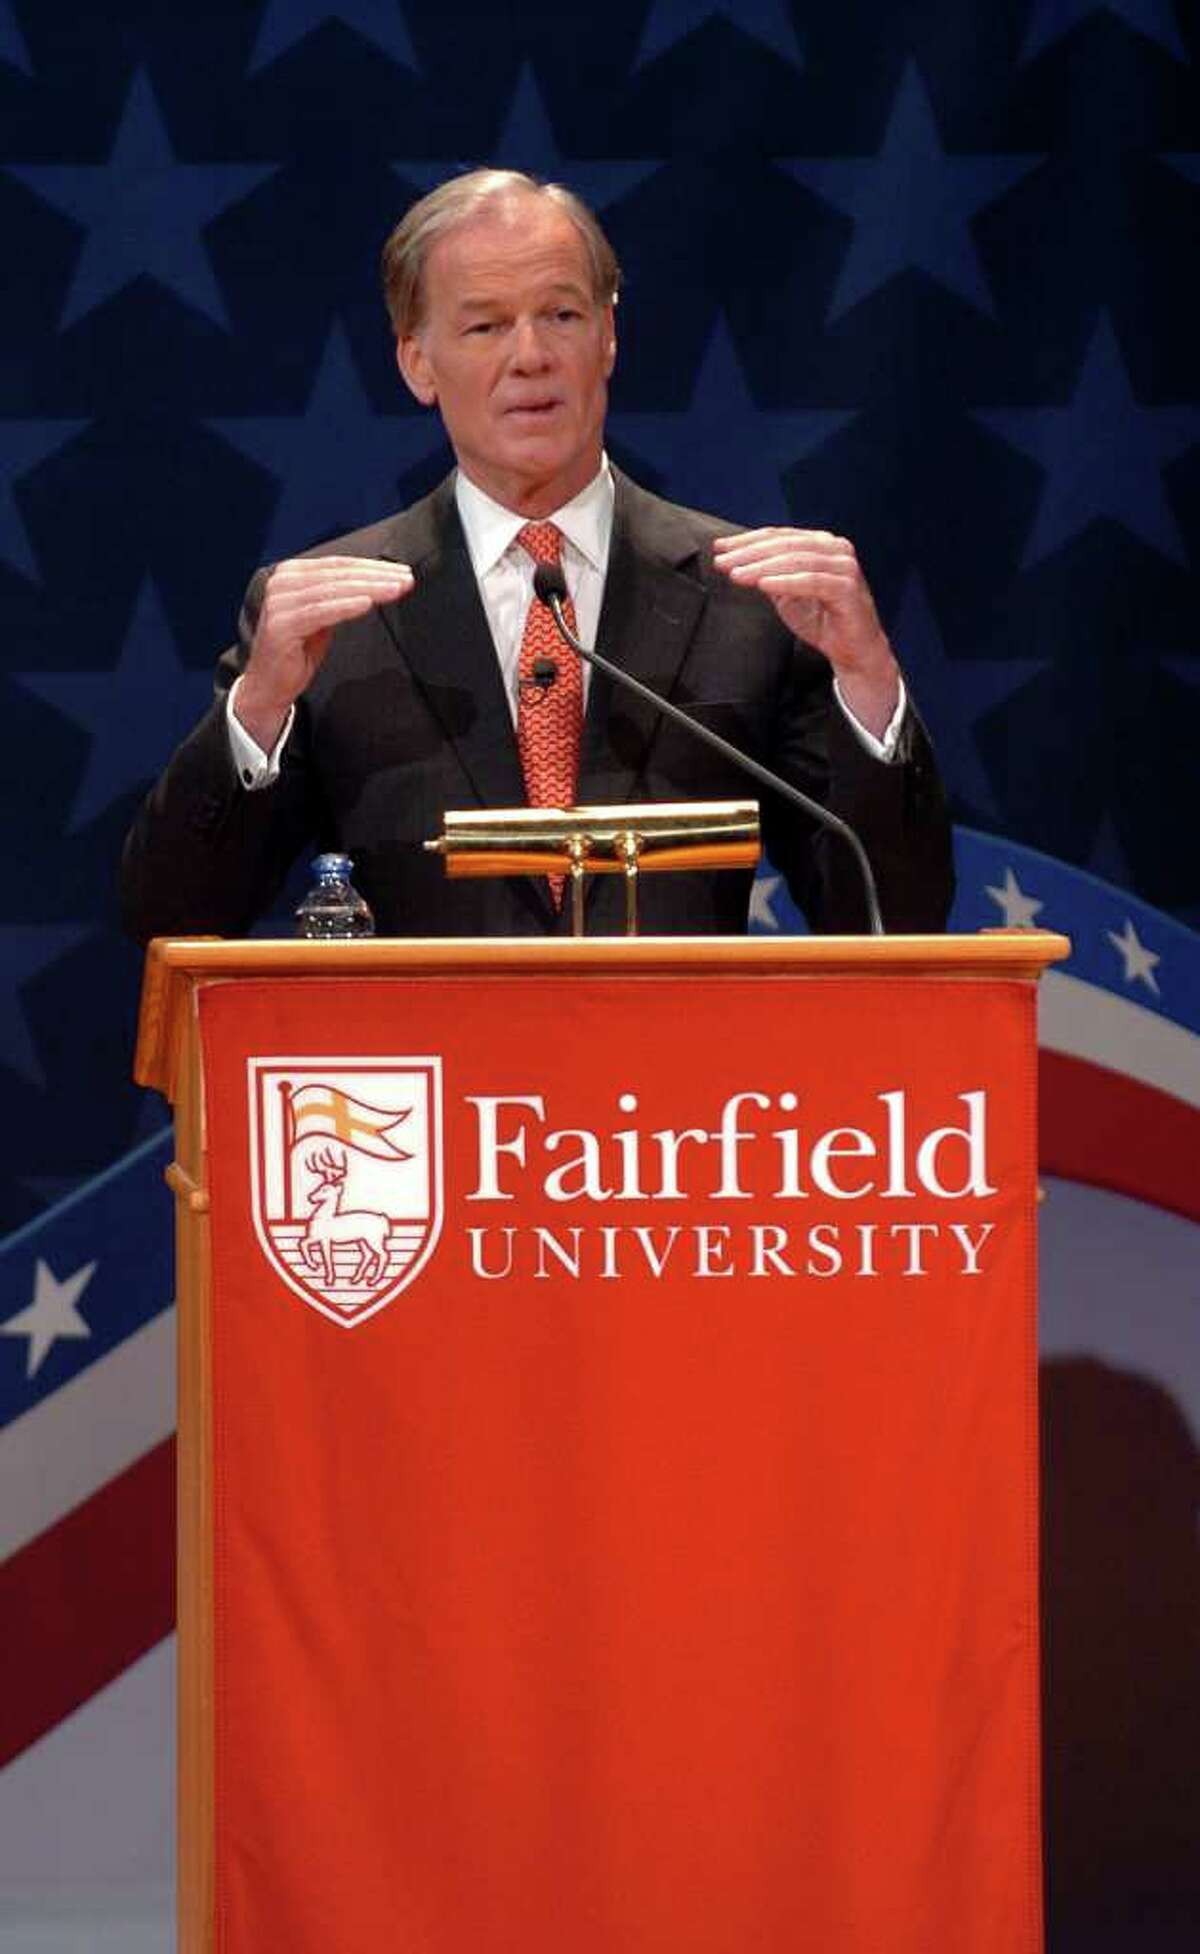 Republican candidate Tom Foley answers a question, during the gubernatorial debate at the Regina Quick Center for the Arts at Fairfield University in Fairfield, Conn. on Tuesday October 19, 2010.